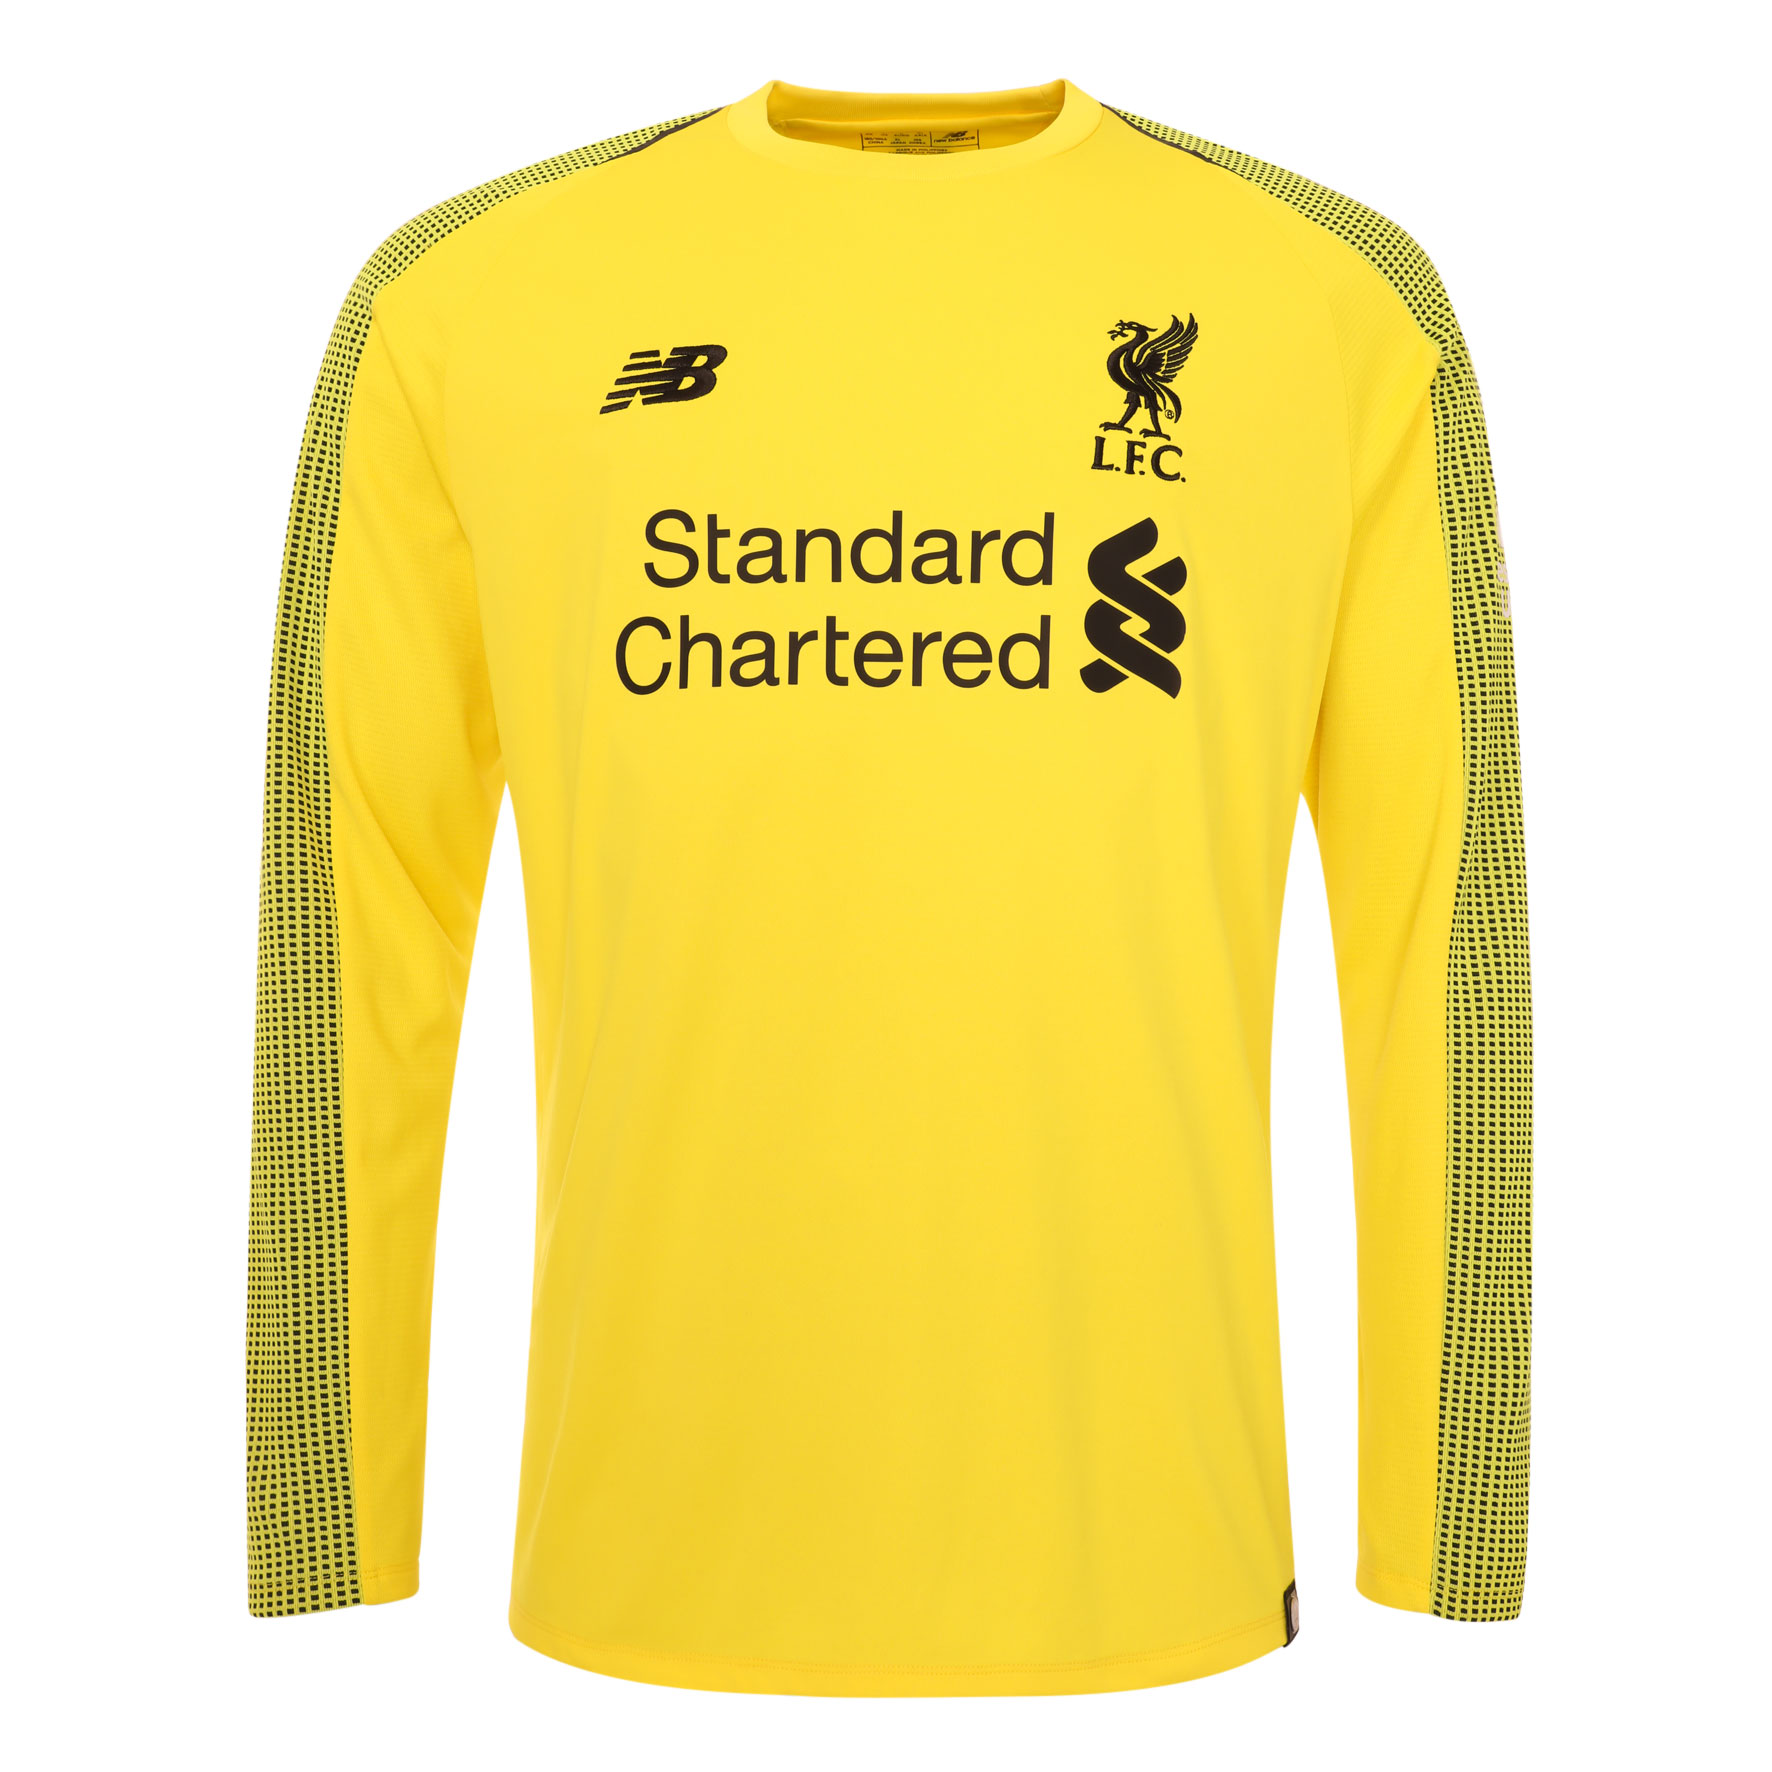 860ed3589e8 Liverpool have launched their new home kit for next season and it s ...